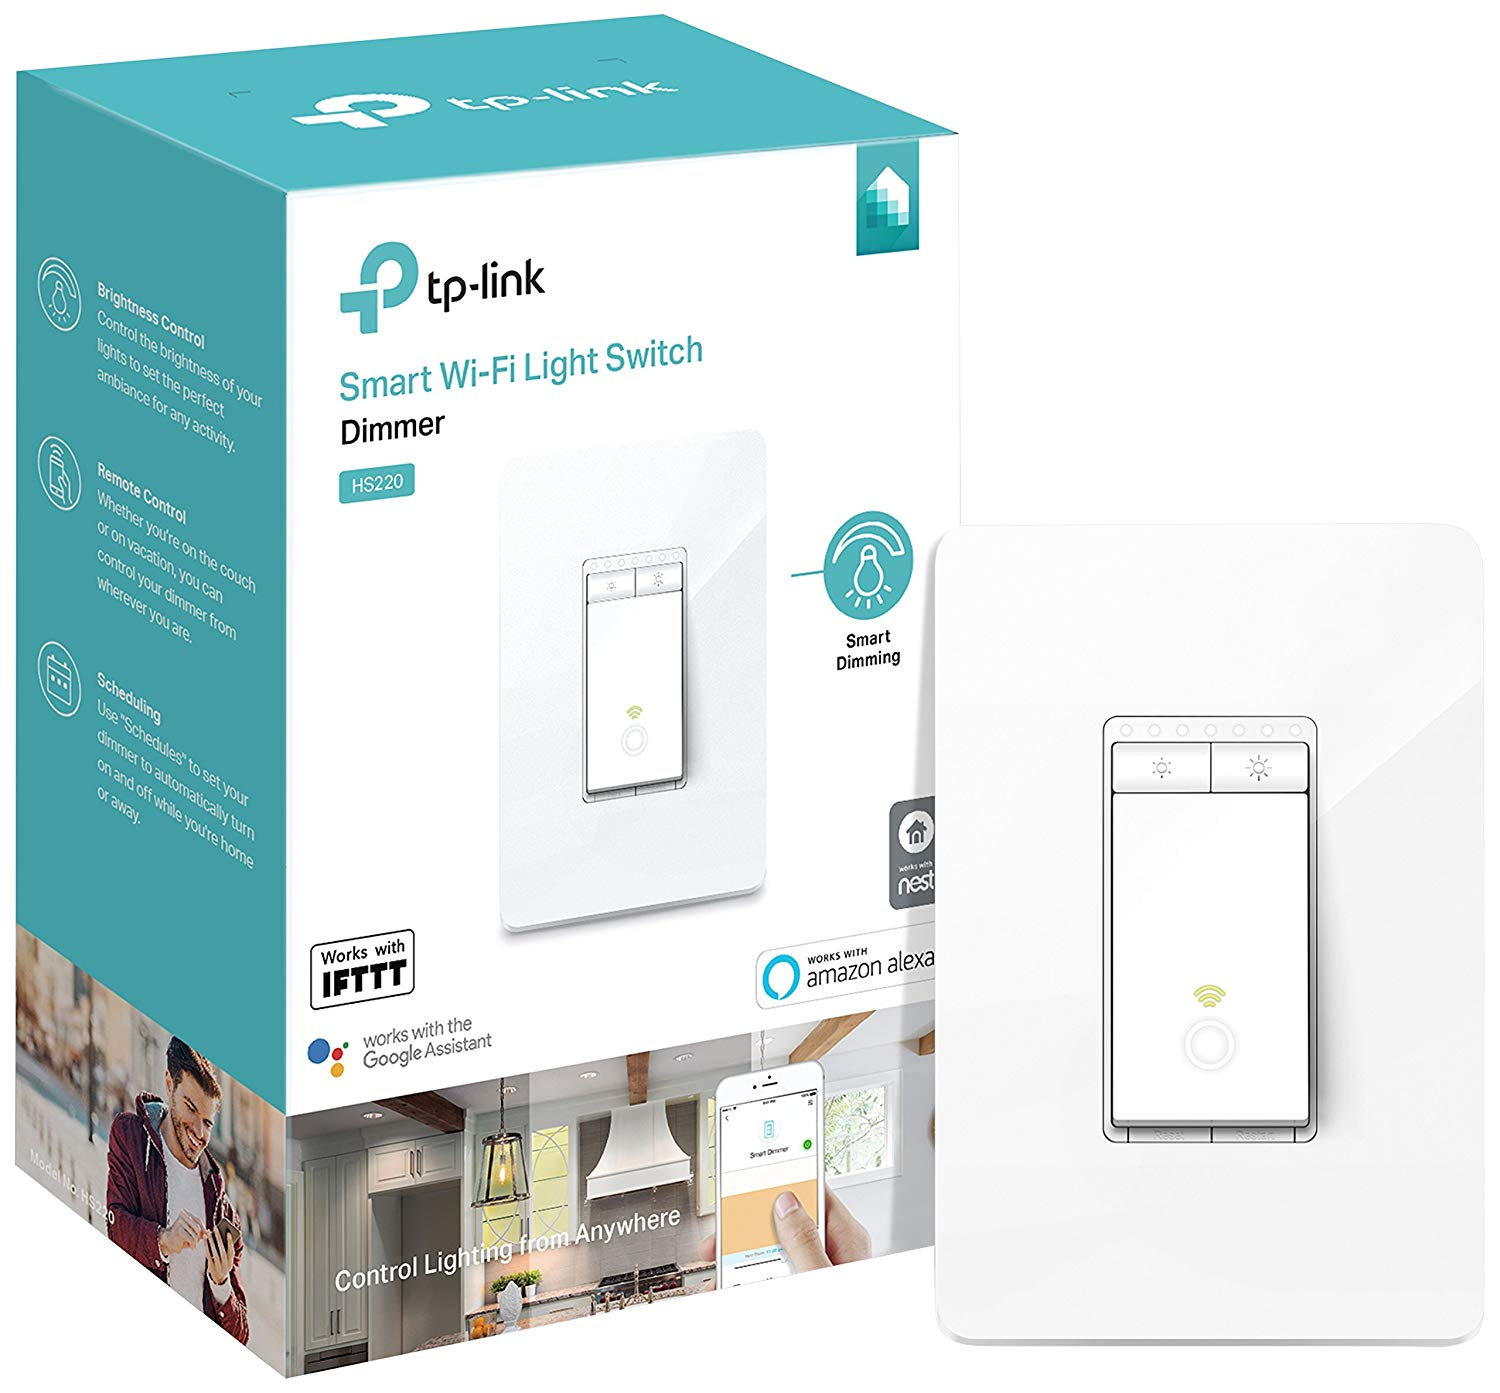 kasa smart light dimmer in box